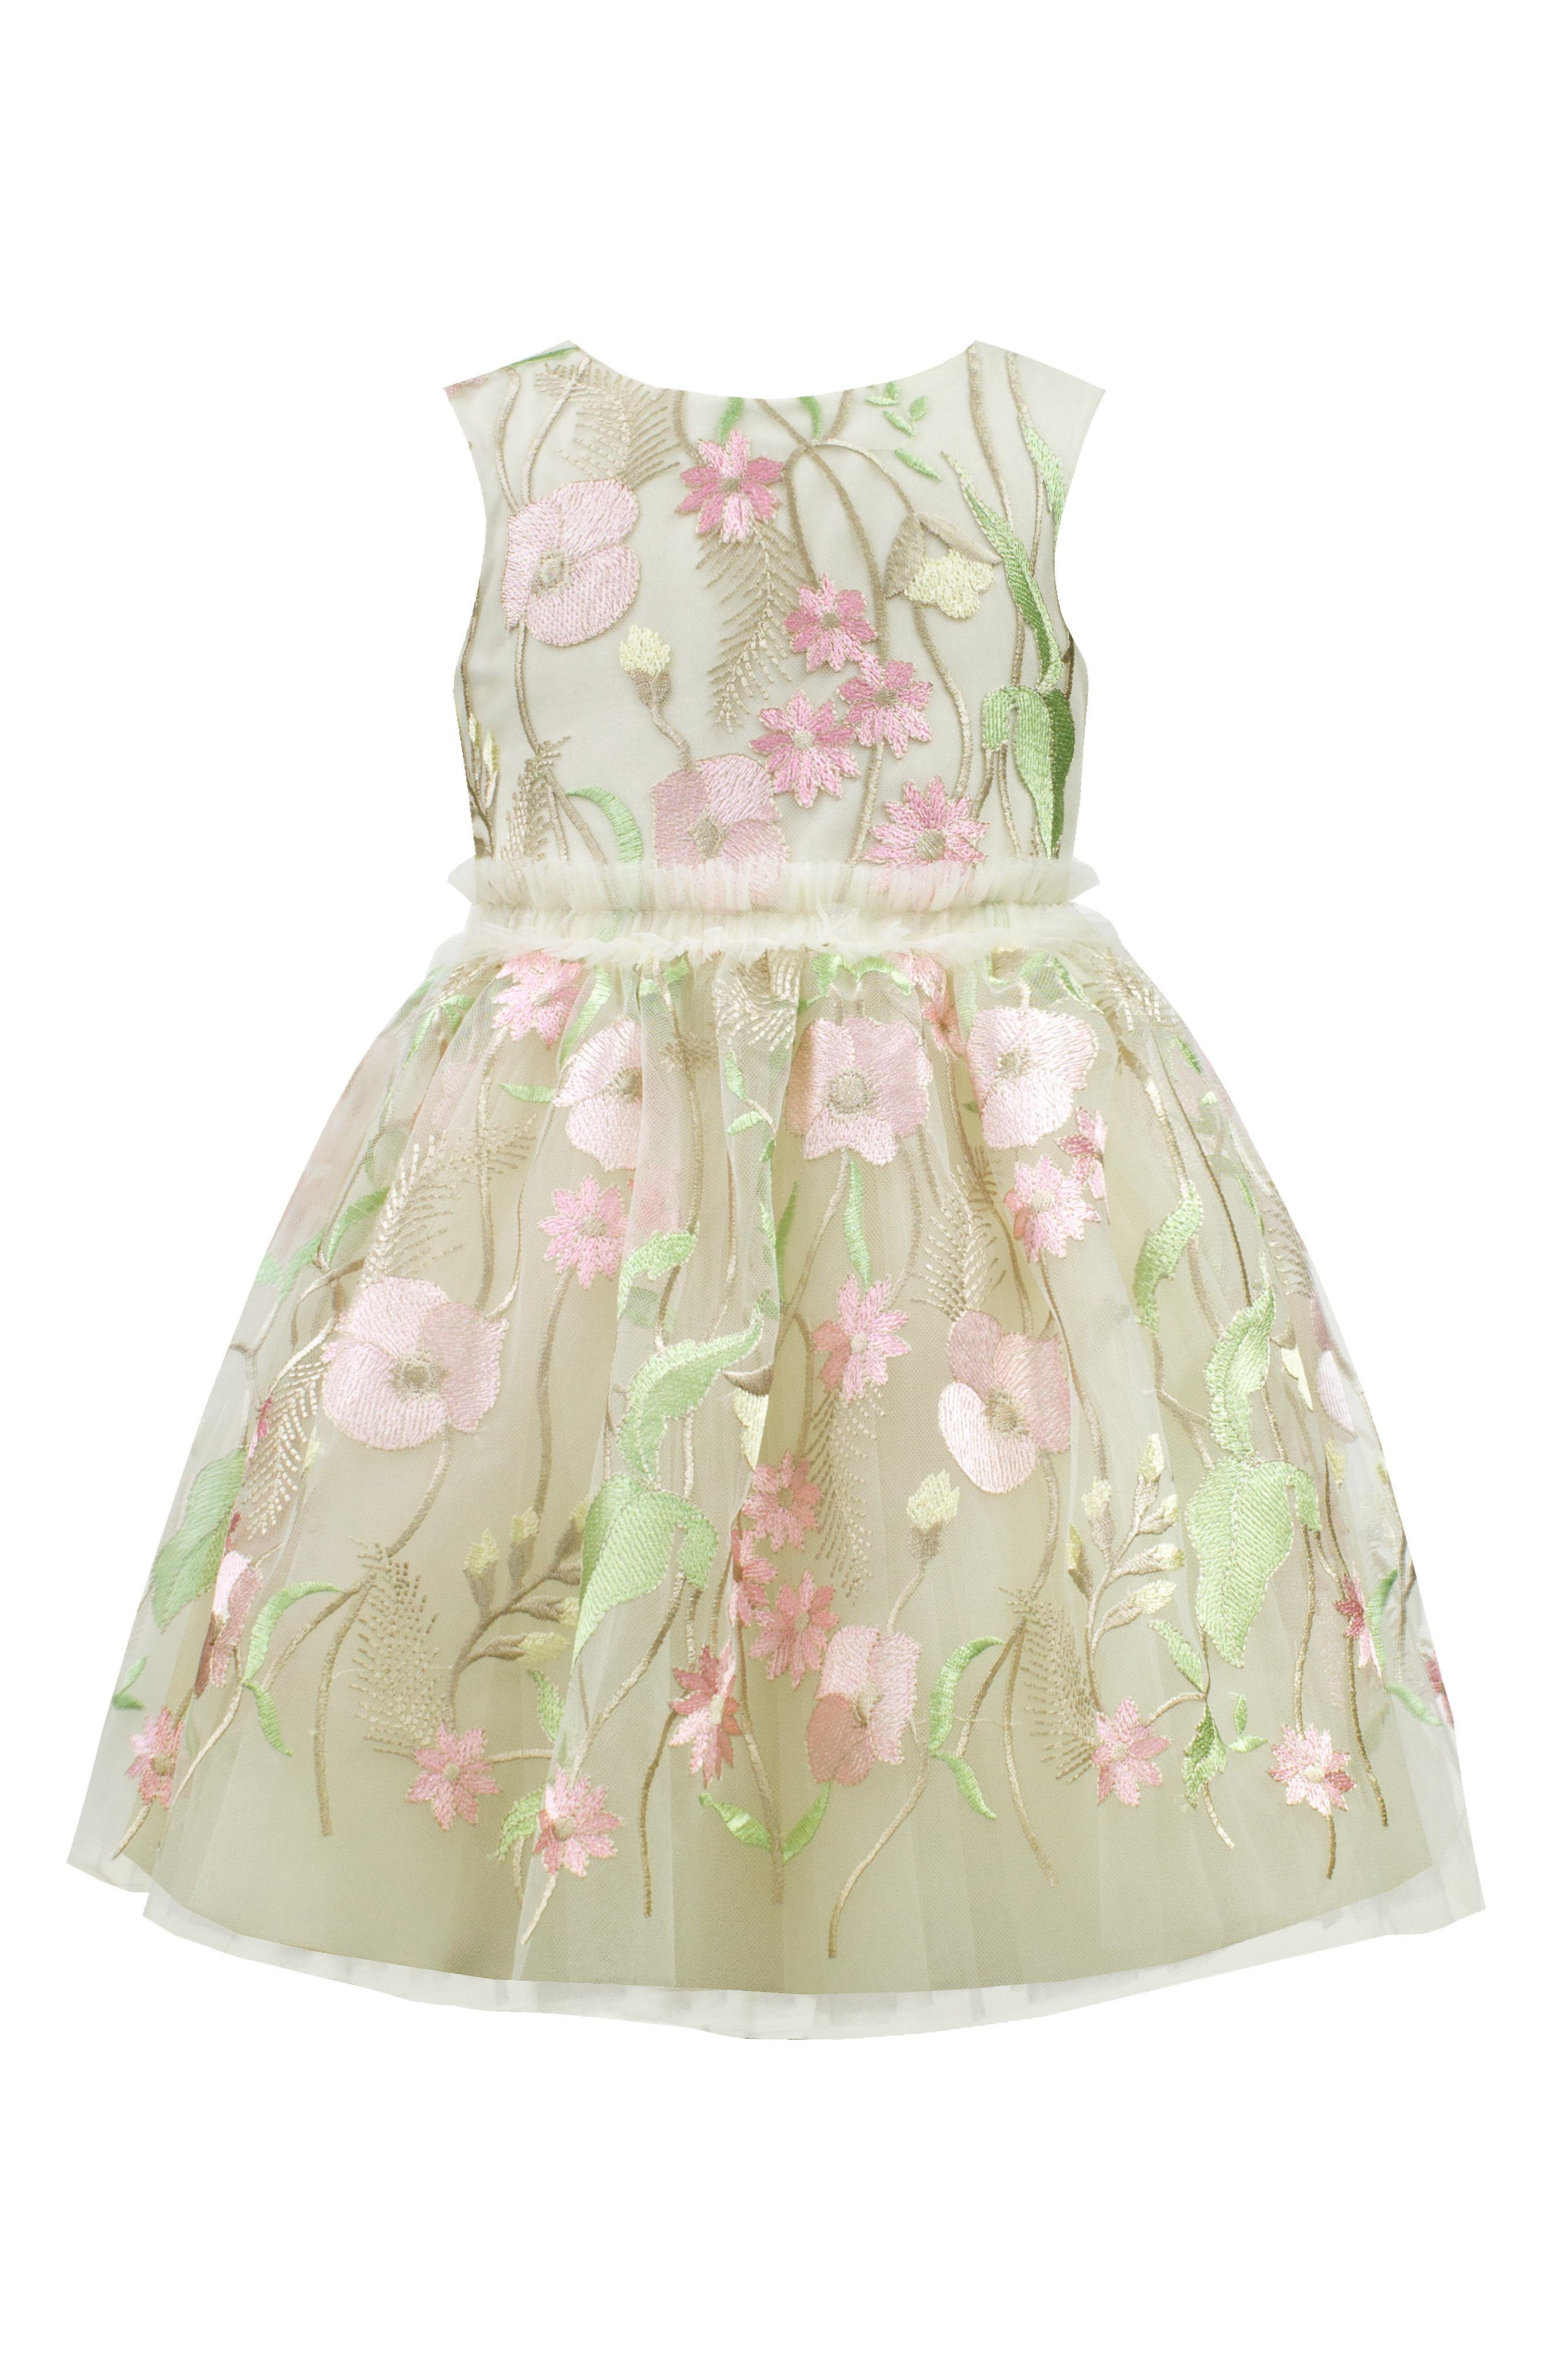 DAVID CHARLES,                             Pastel Embroidered Tulle Dress,                             Main thumbnail 1, color,                             IVORY/ PINK